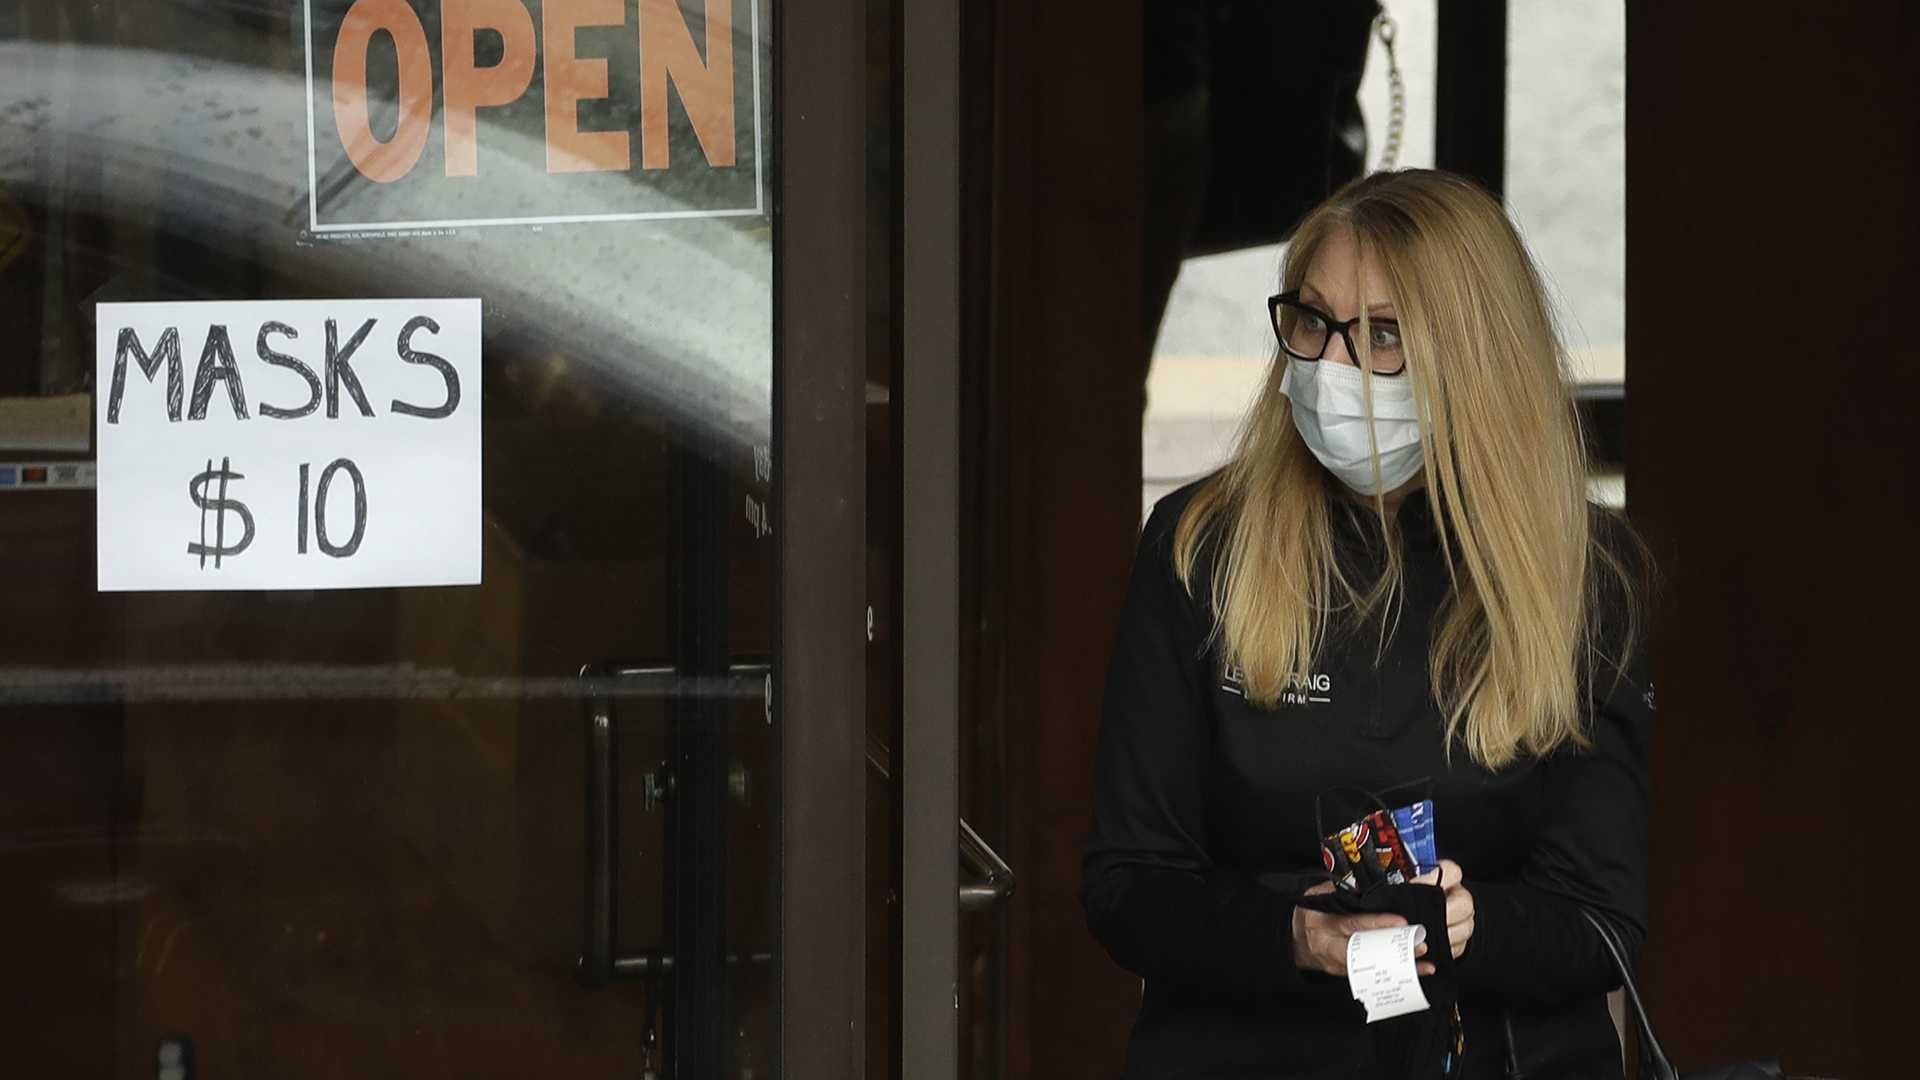 CDC mask recommendations impact Missouri, where nearly entire state is in 'high transmission' category